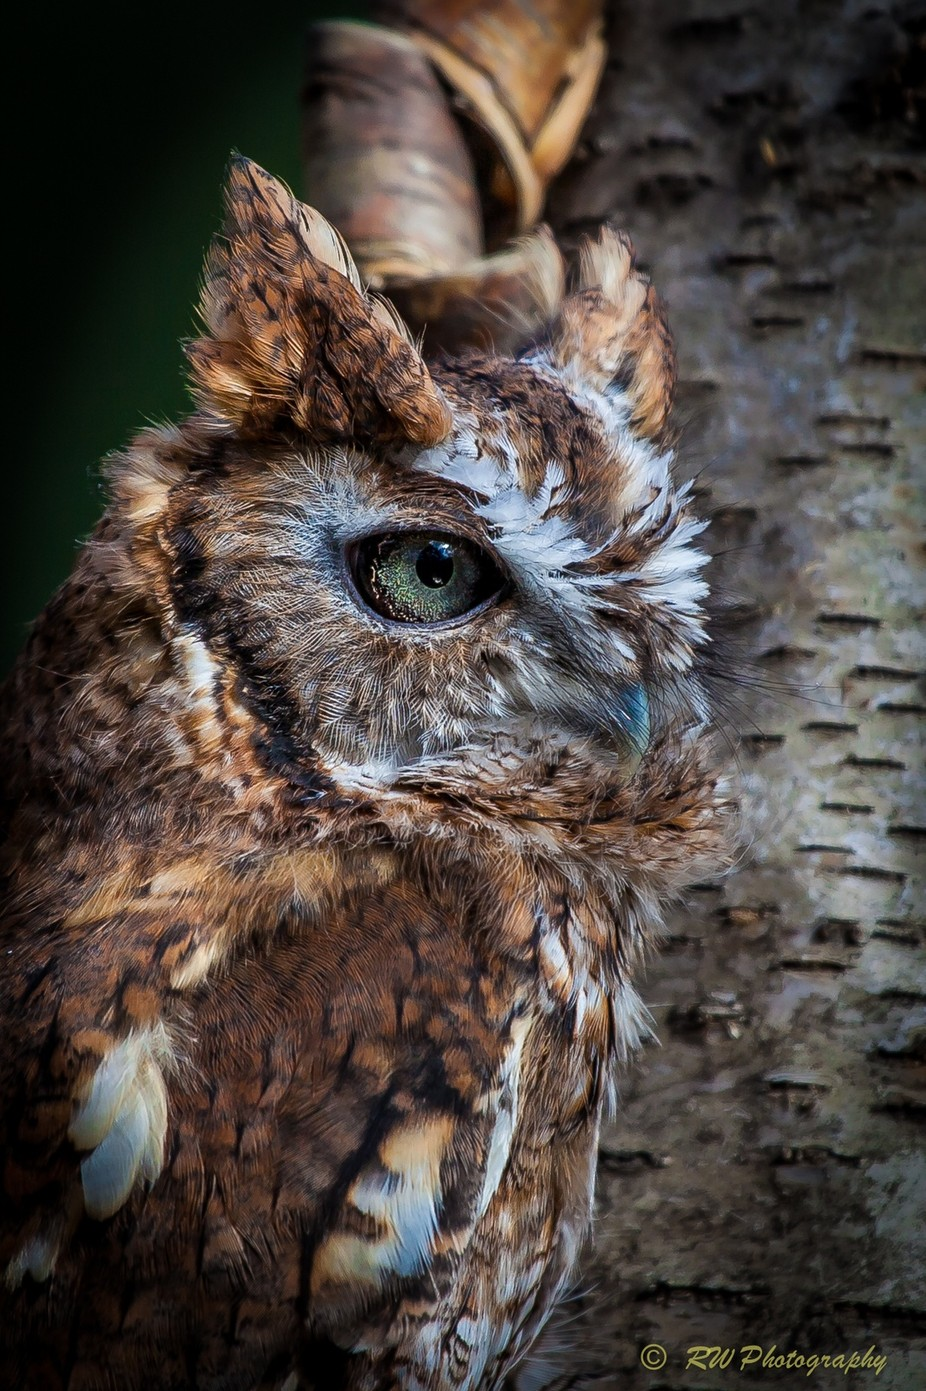 Screech Owl 3 by DeadEye - Green Eyes Photo Contest